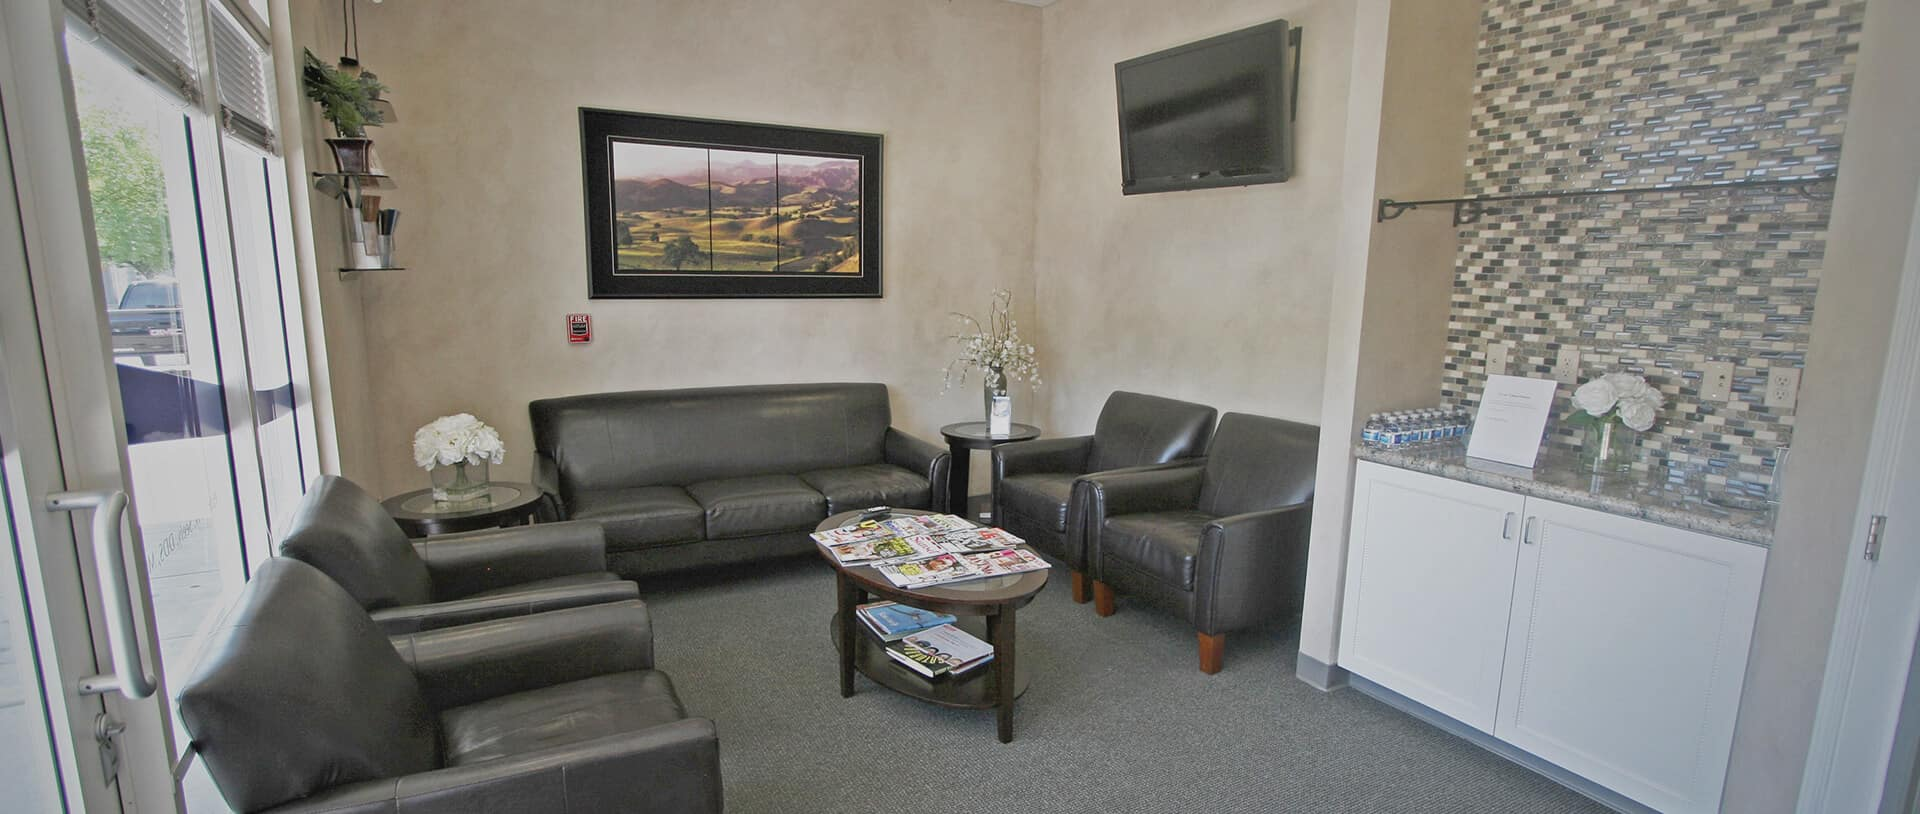 Windsor Dental Group waiting Room